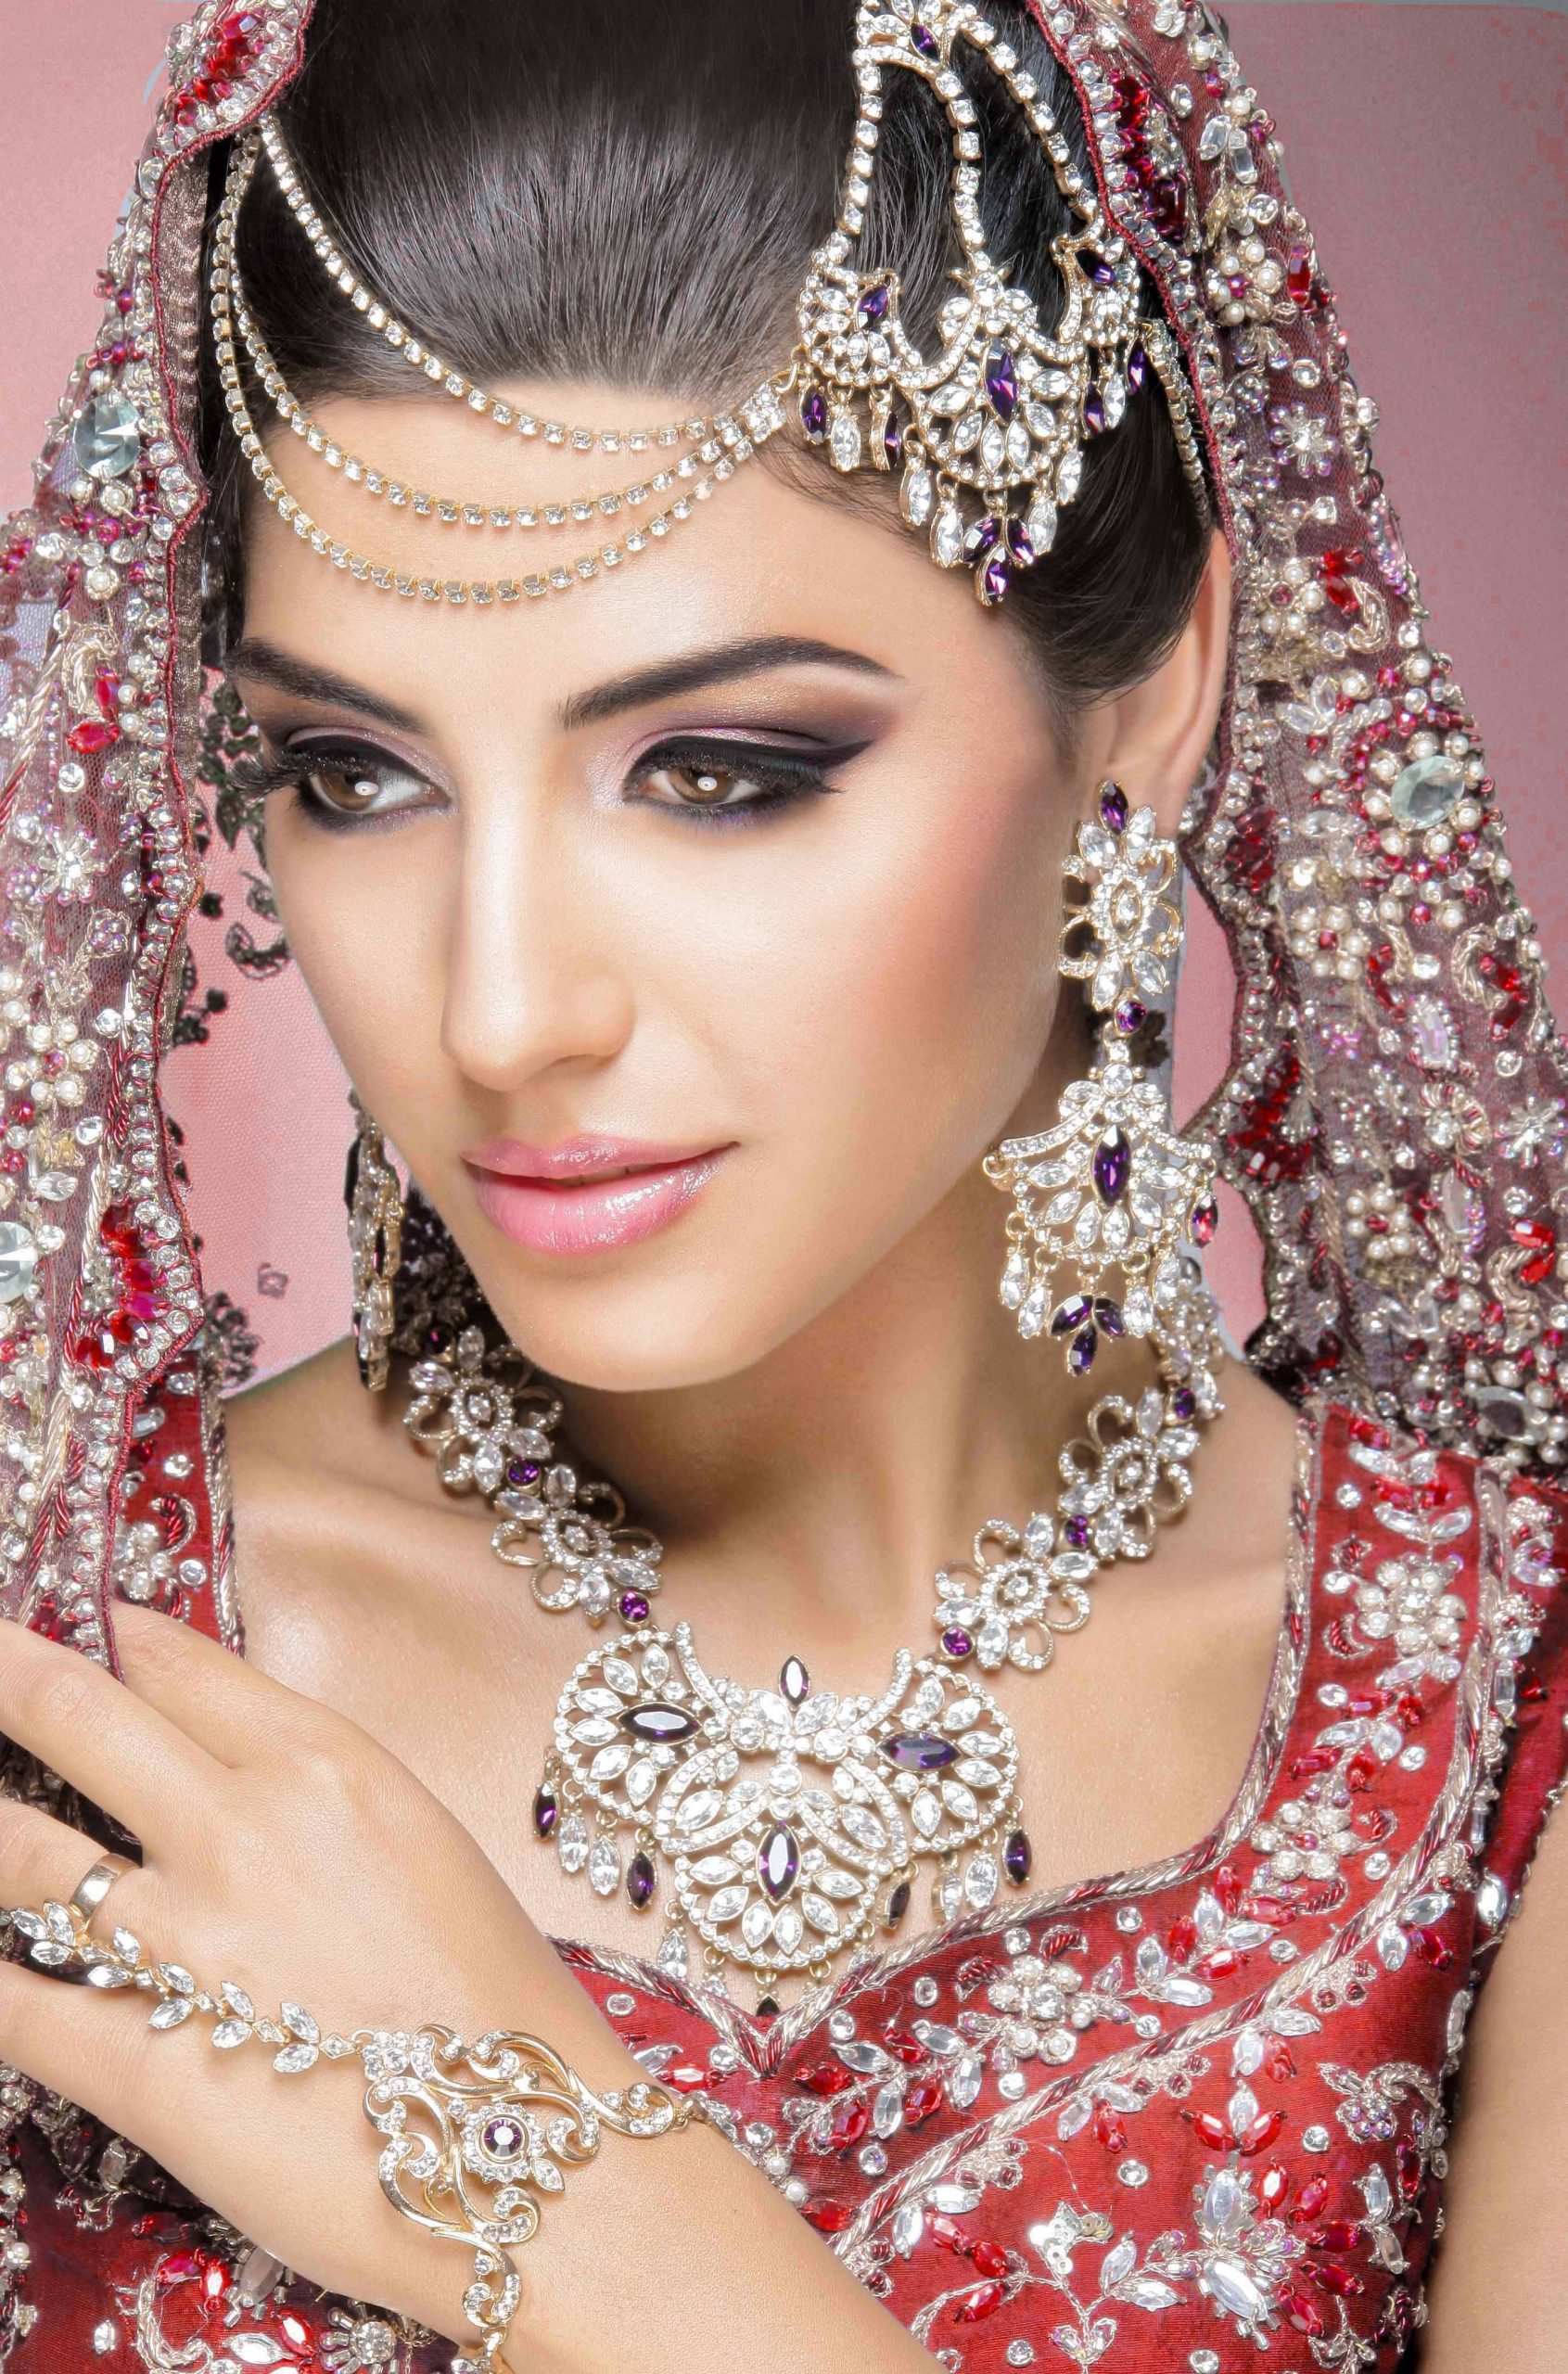 Jasika Beauty Clinic | Beauty Parlor , Hair Salon And in Indian Hair And Makeup Leicester